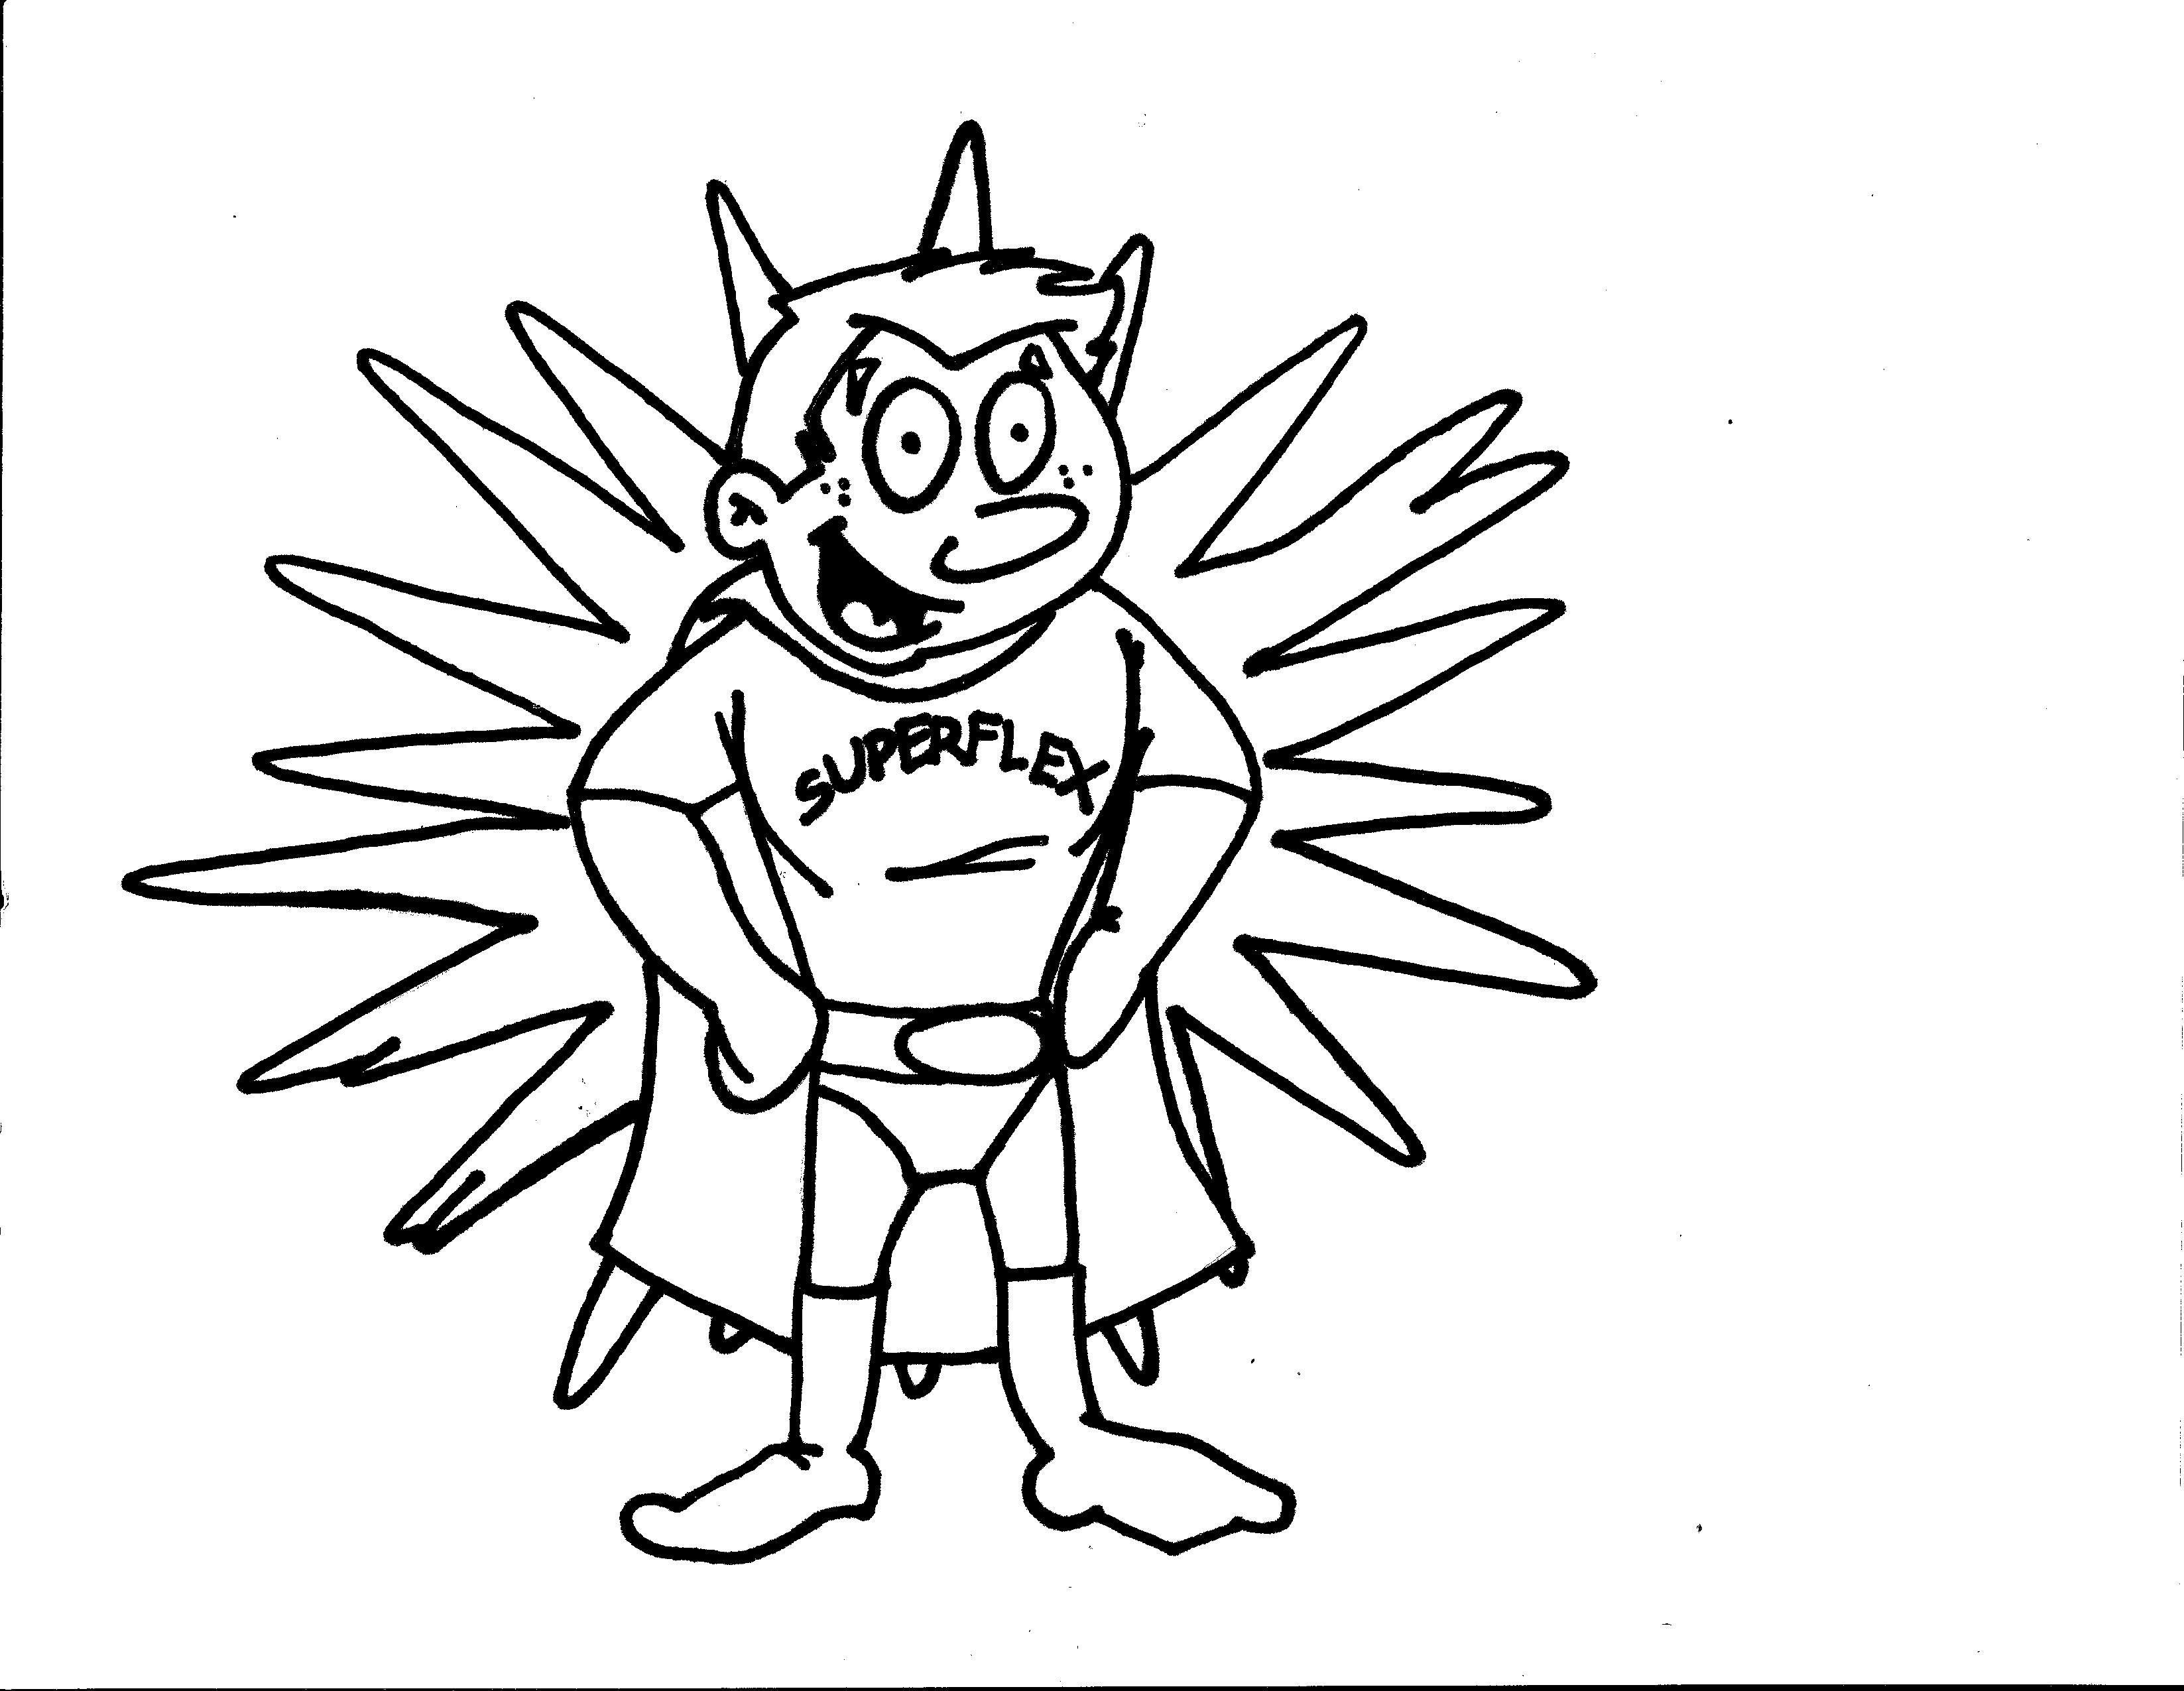 superflex social skills coloring pages | Superflex Coloring Page. For each character, Identify the ...